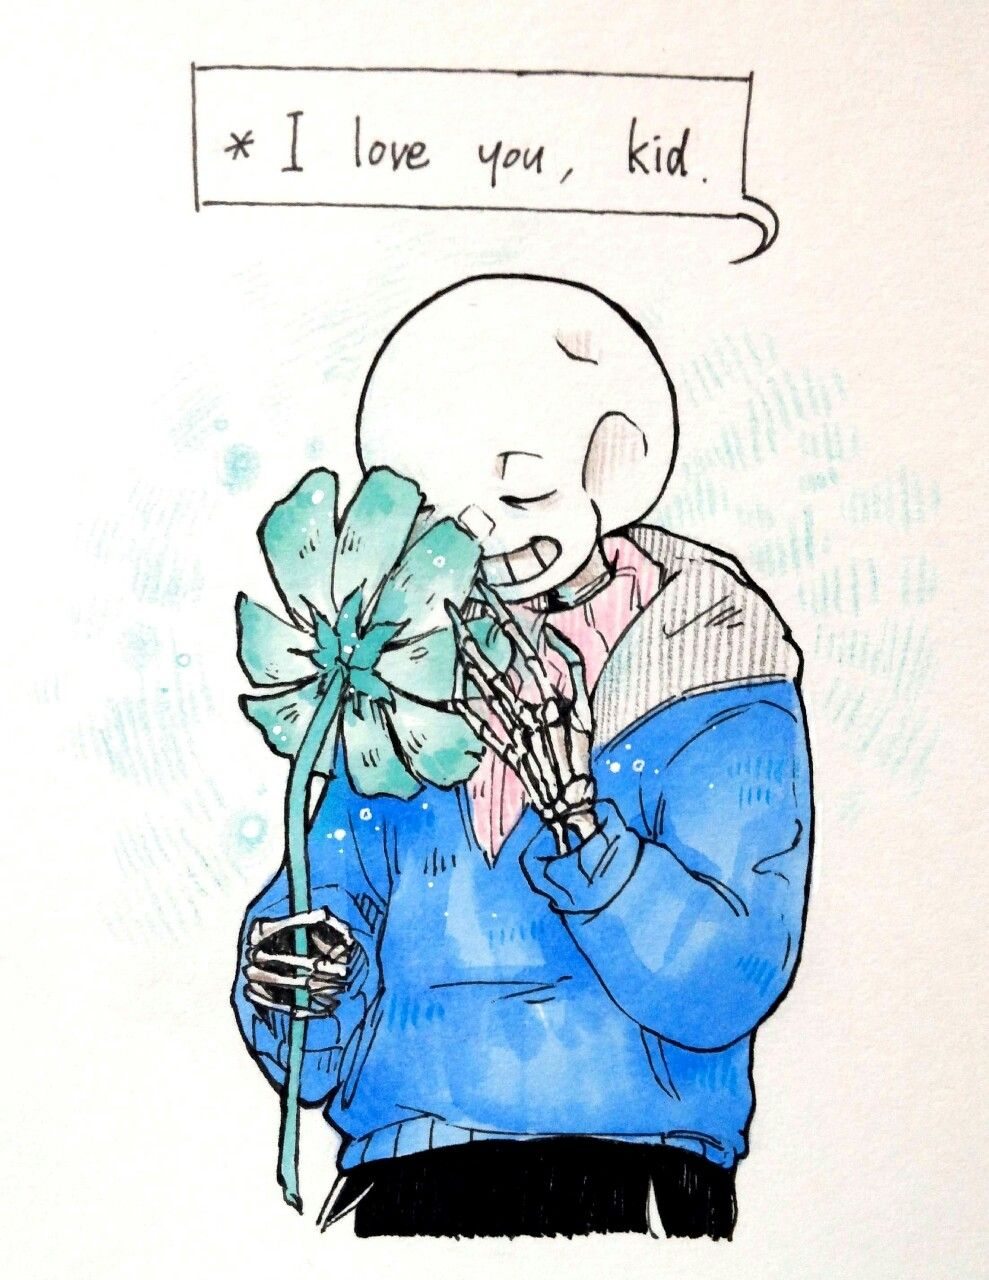 Sans and Echo Flower to Frisk